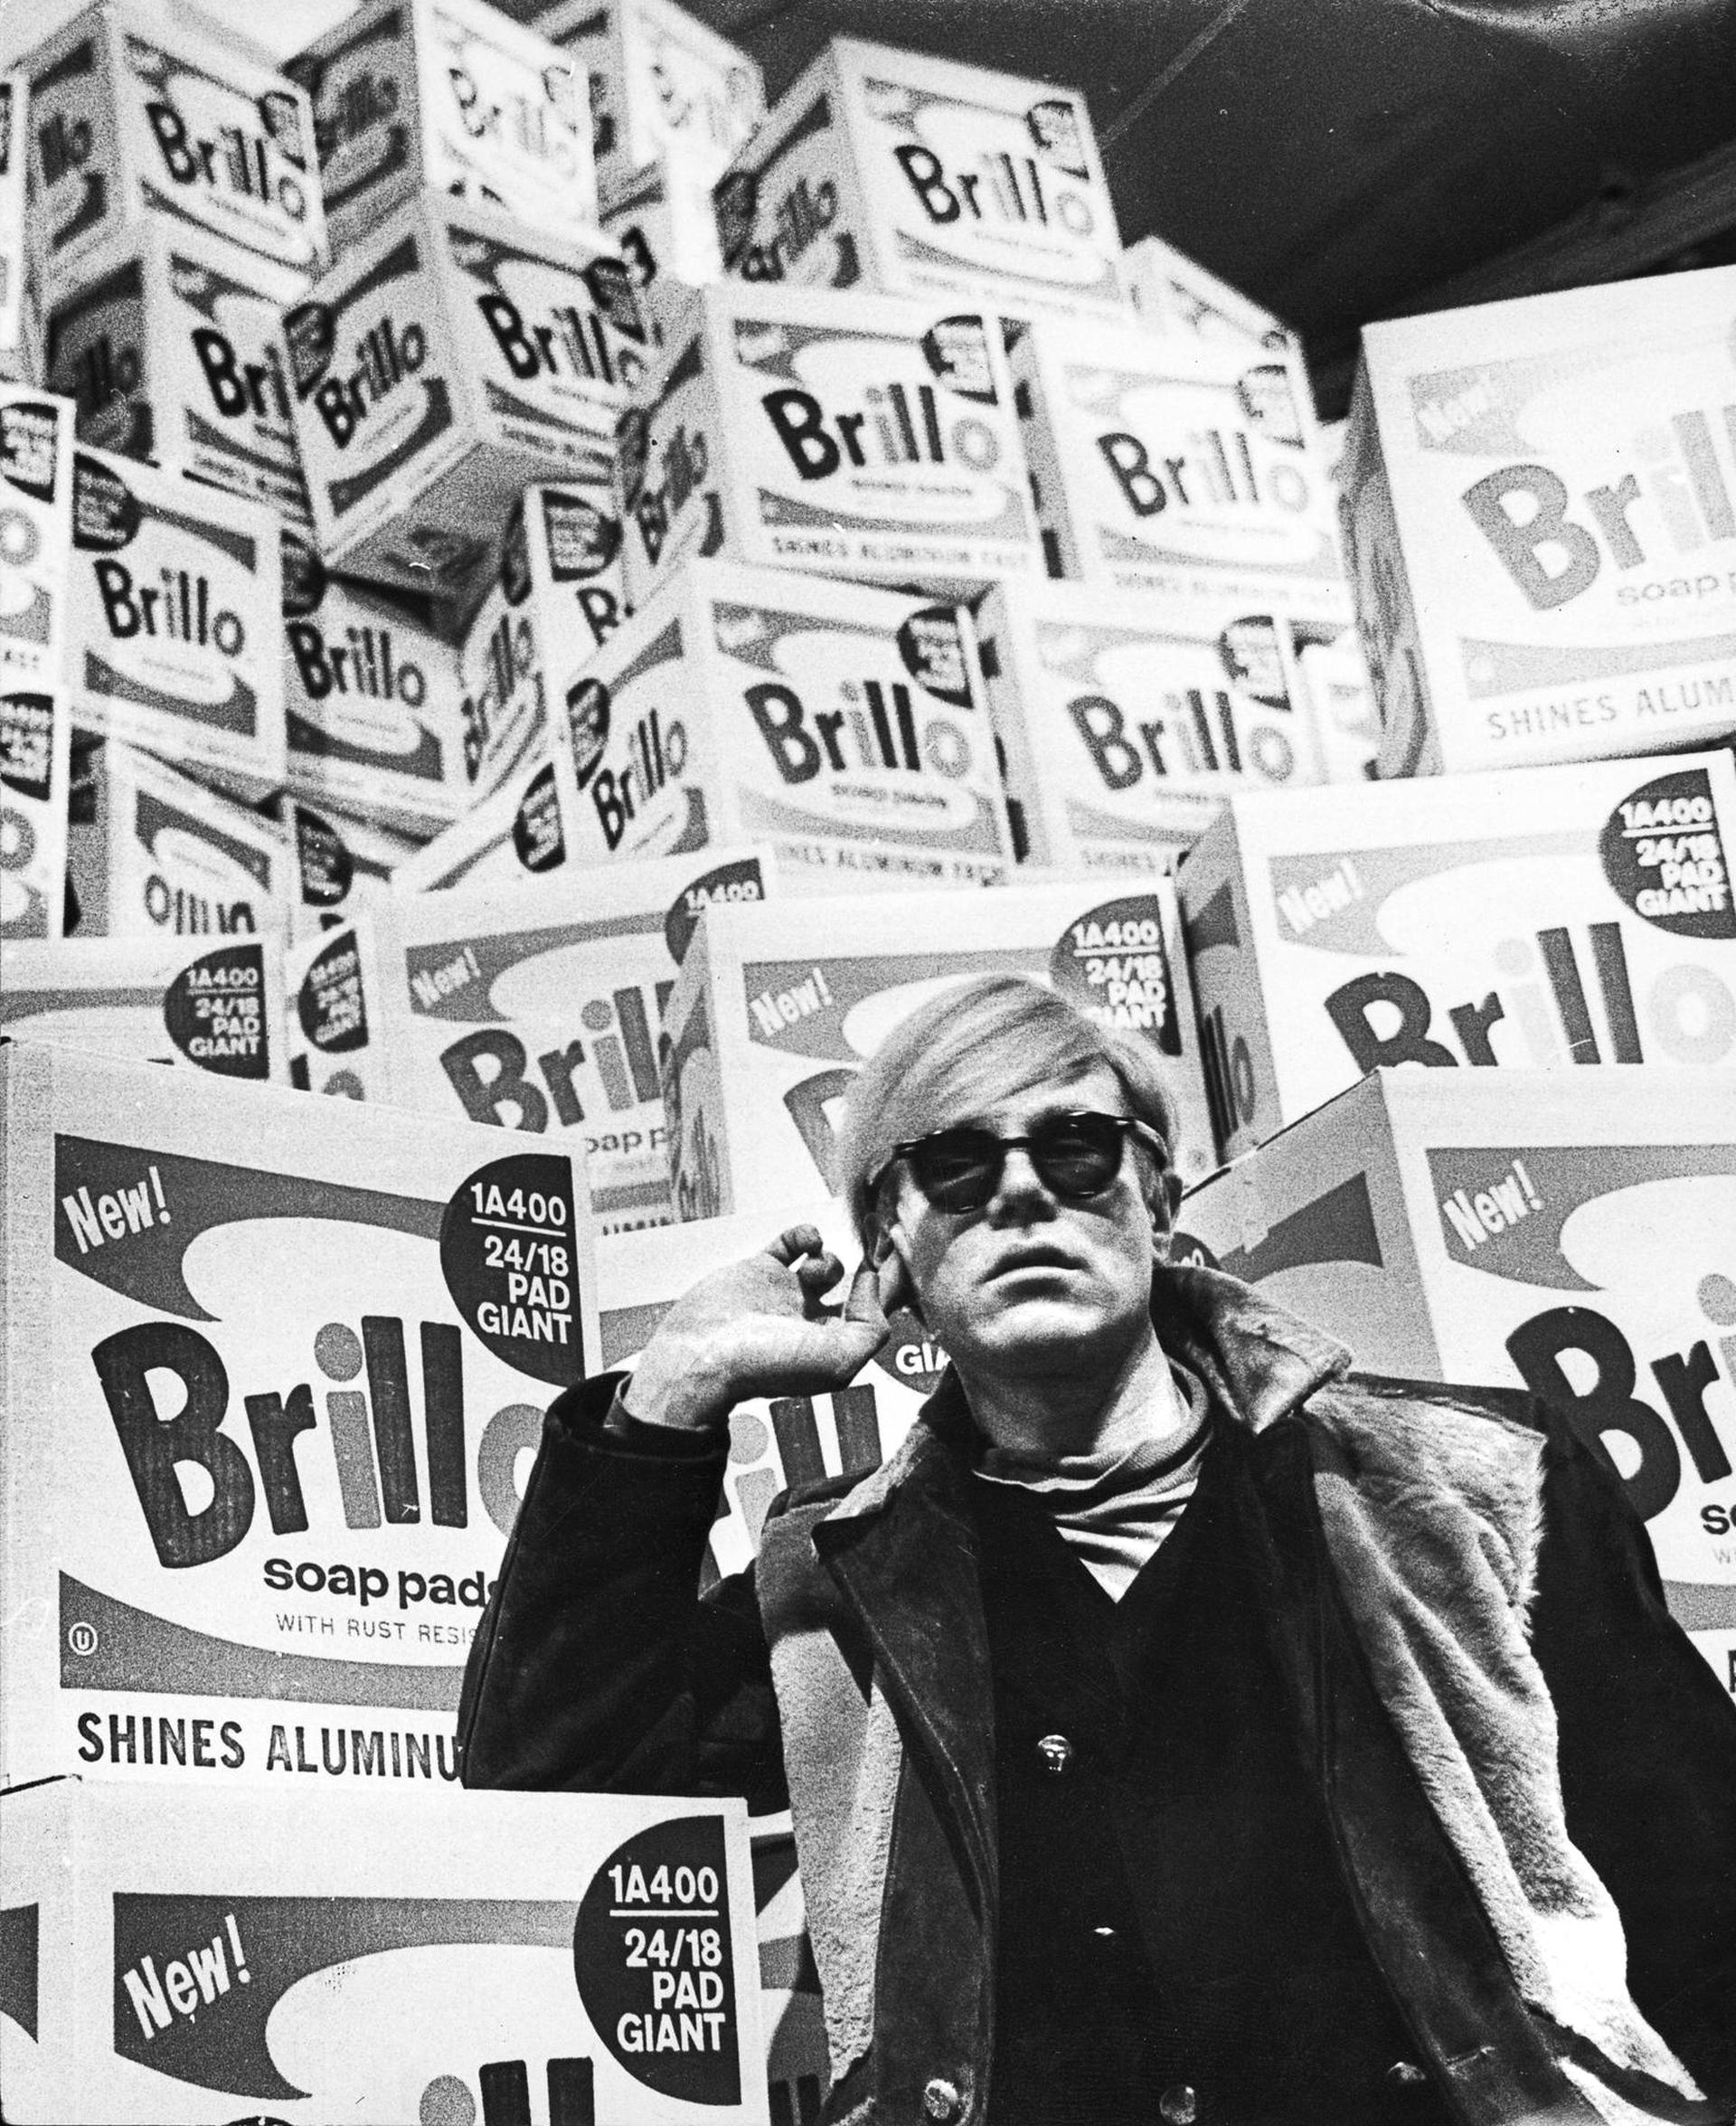 Andy Warhol and Brillo boxes